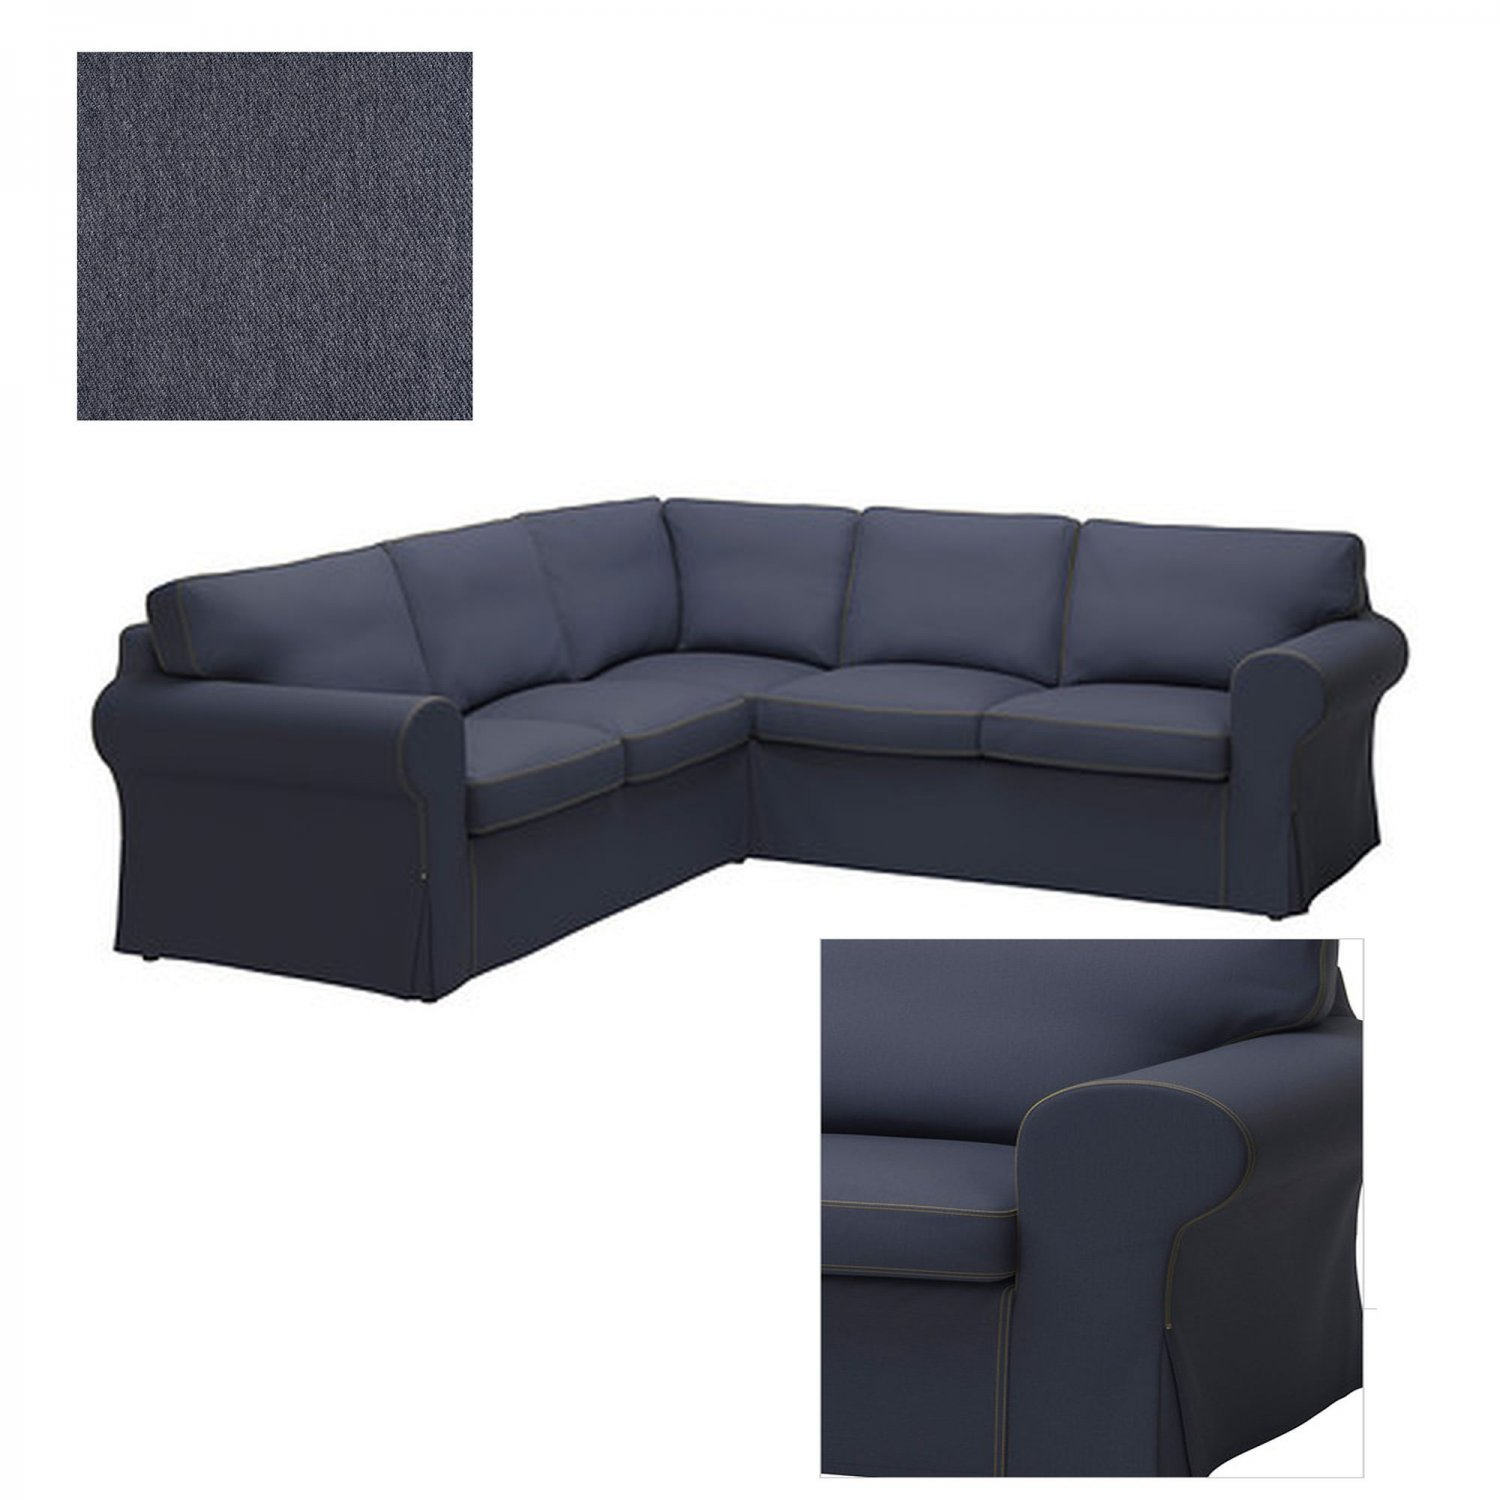 cover futons futon queen denim shop synthetic blue light furniture